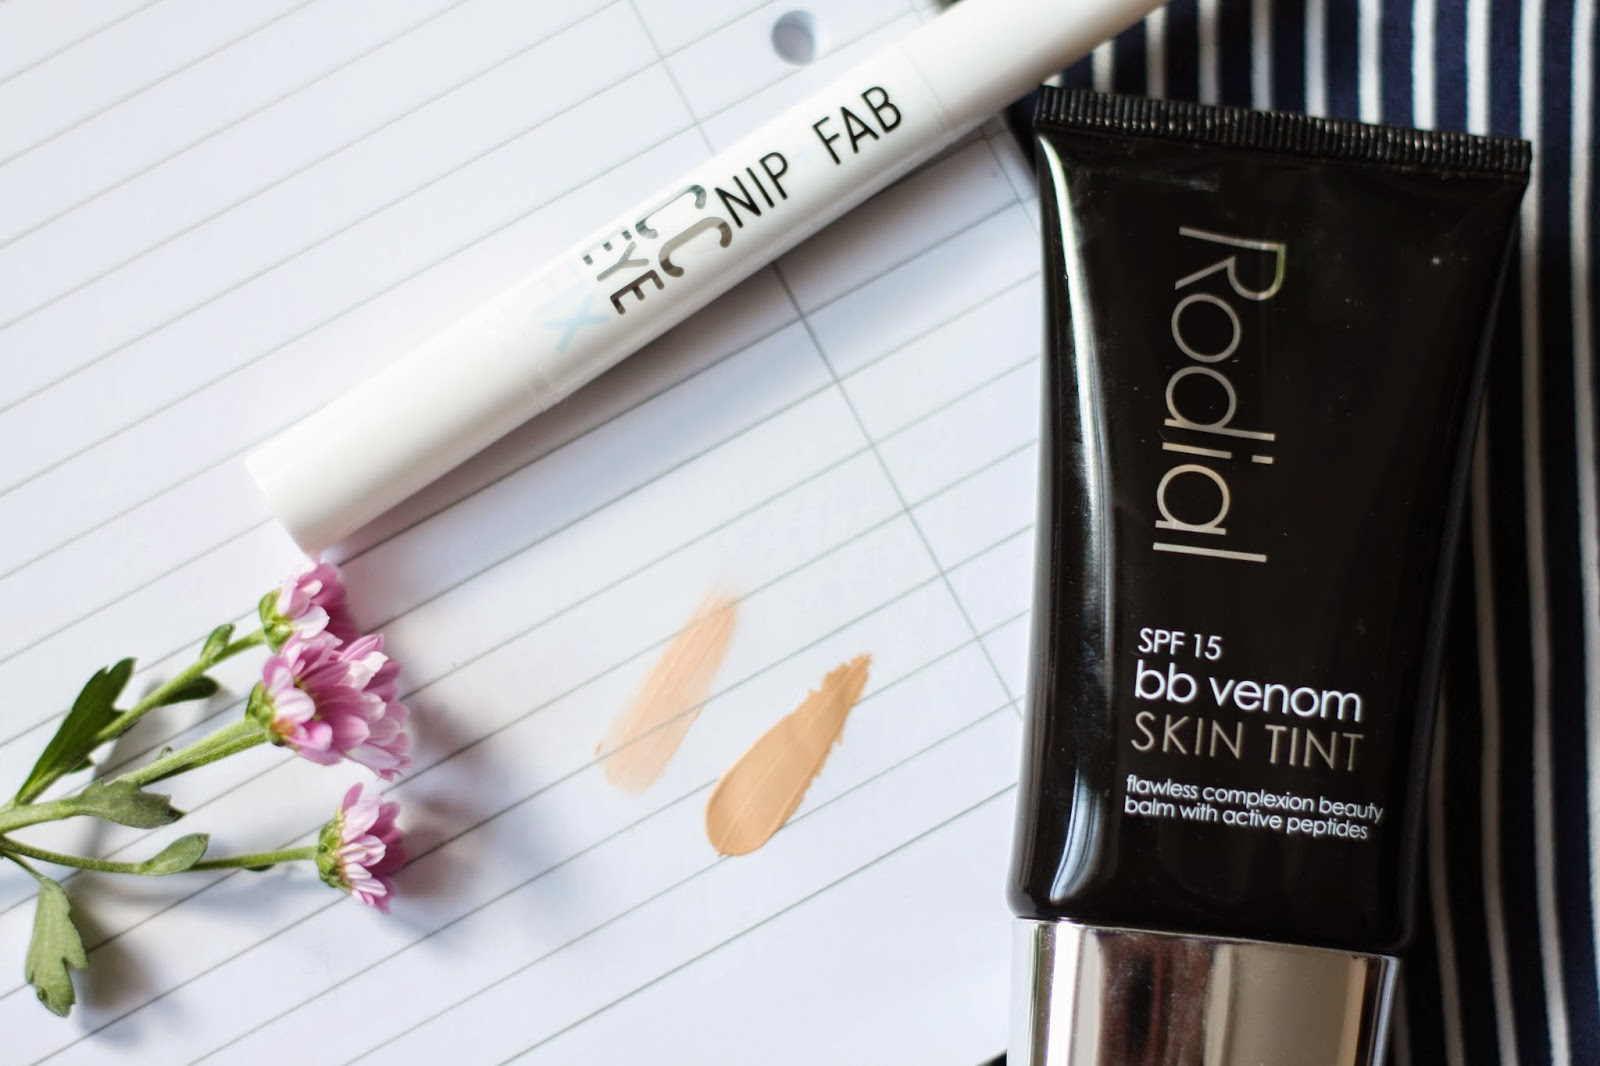 Rodial BB Venom skin tint and Nip+Fab CC Eye Fix review